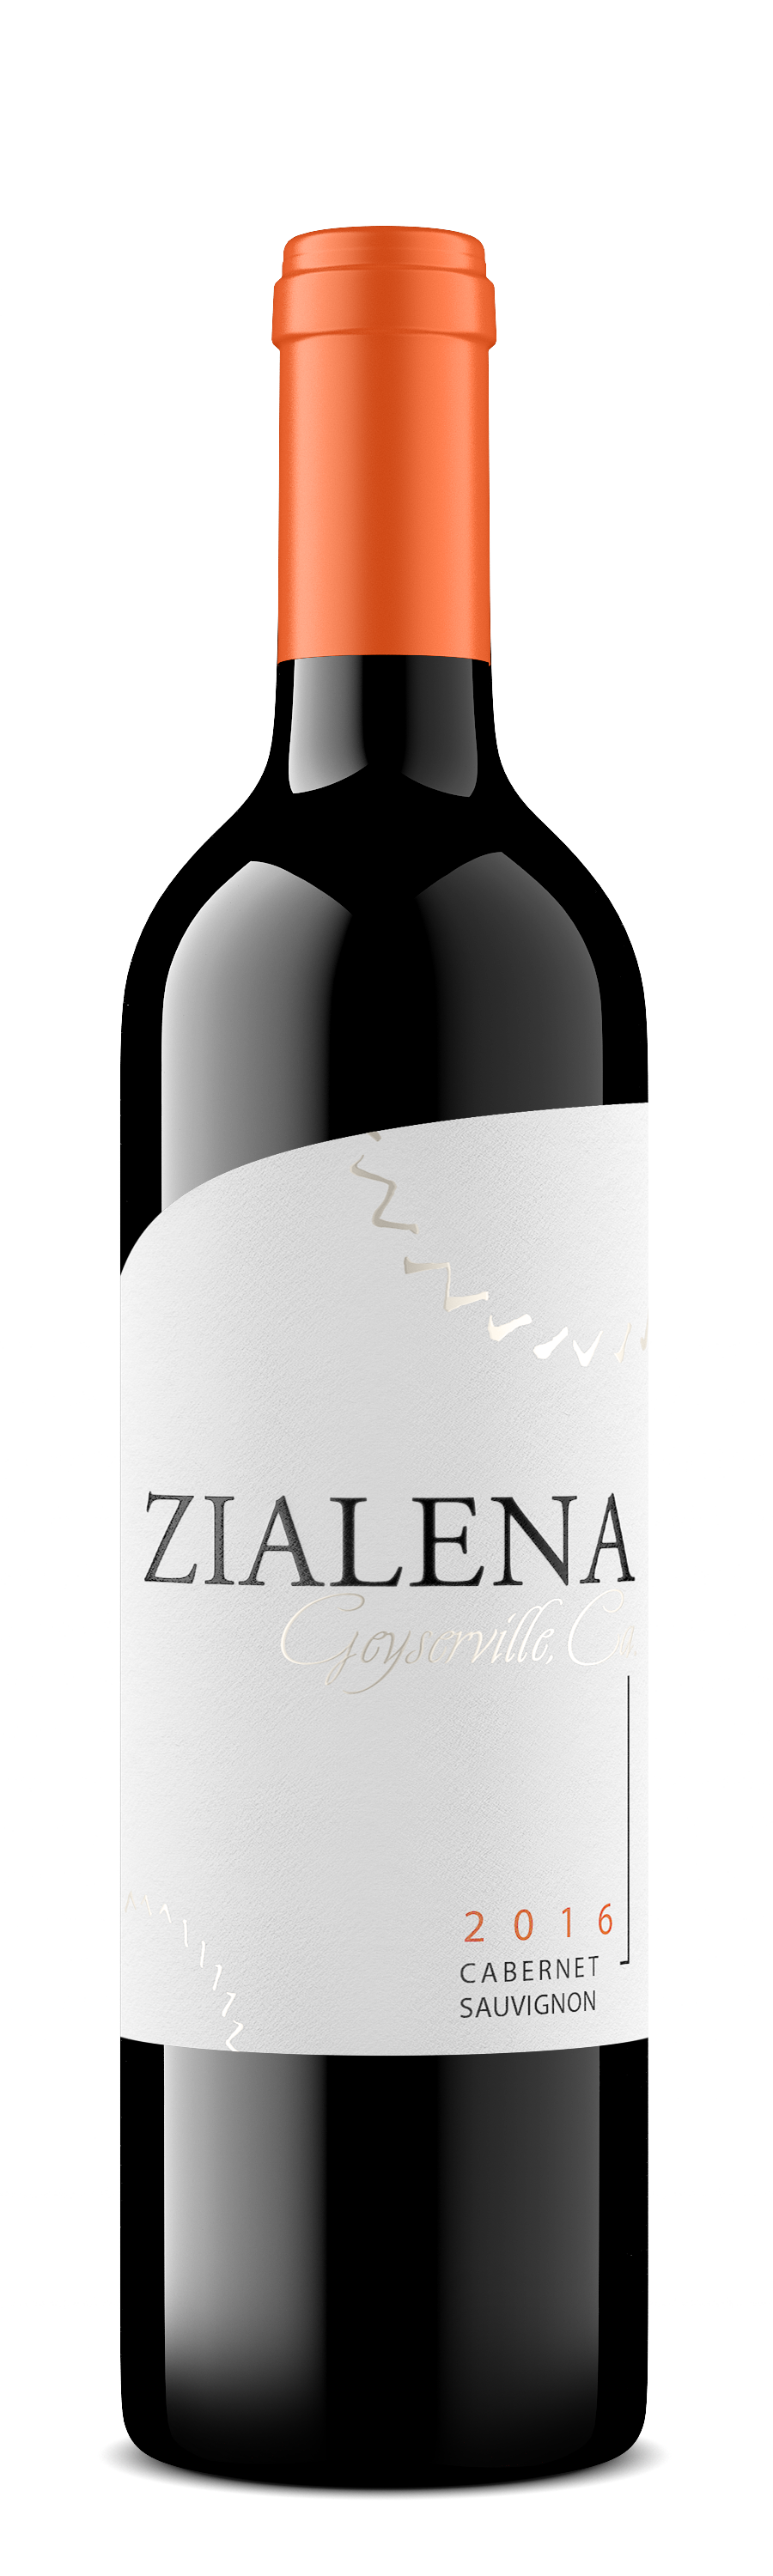 Product Image for 2015 Cabernet Sauvignon